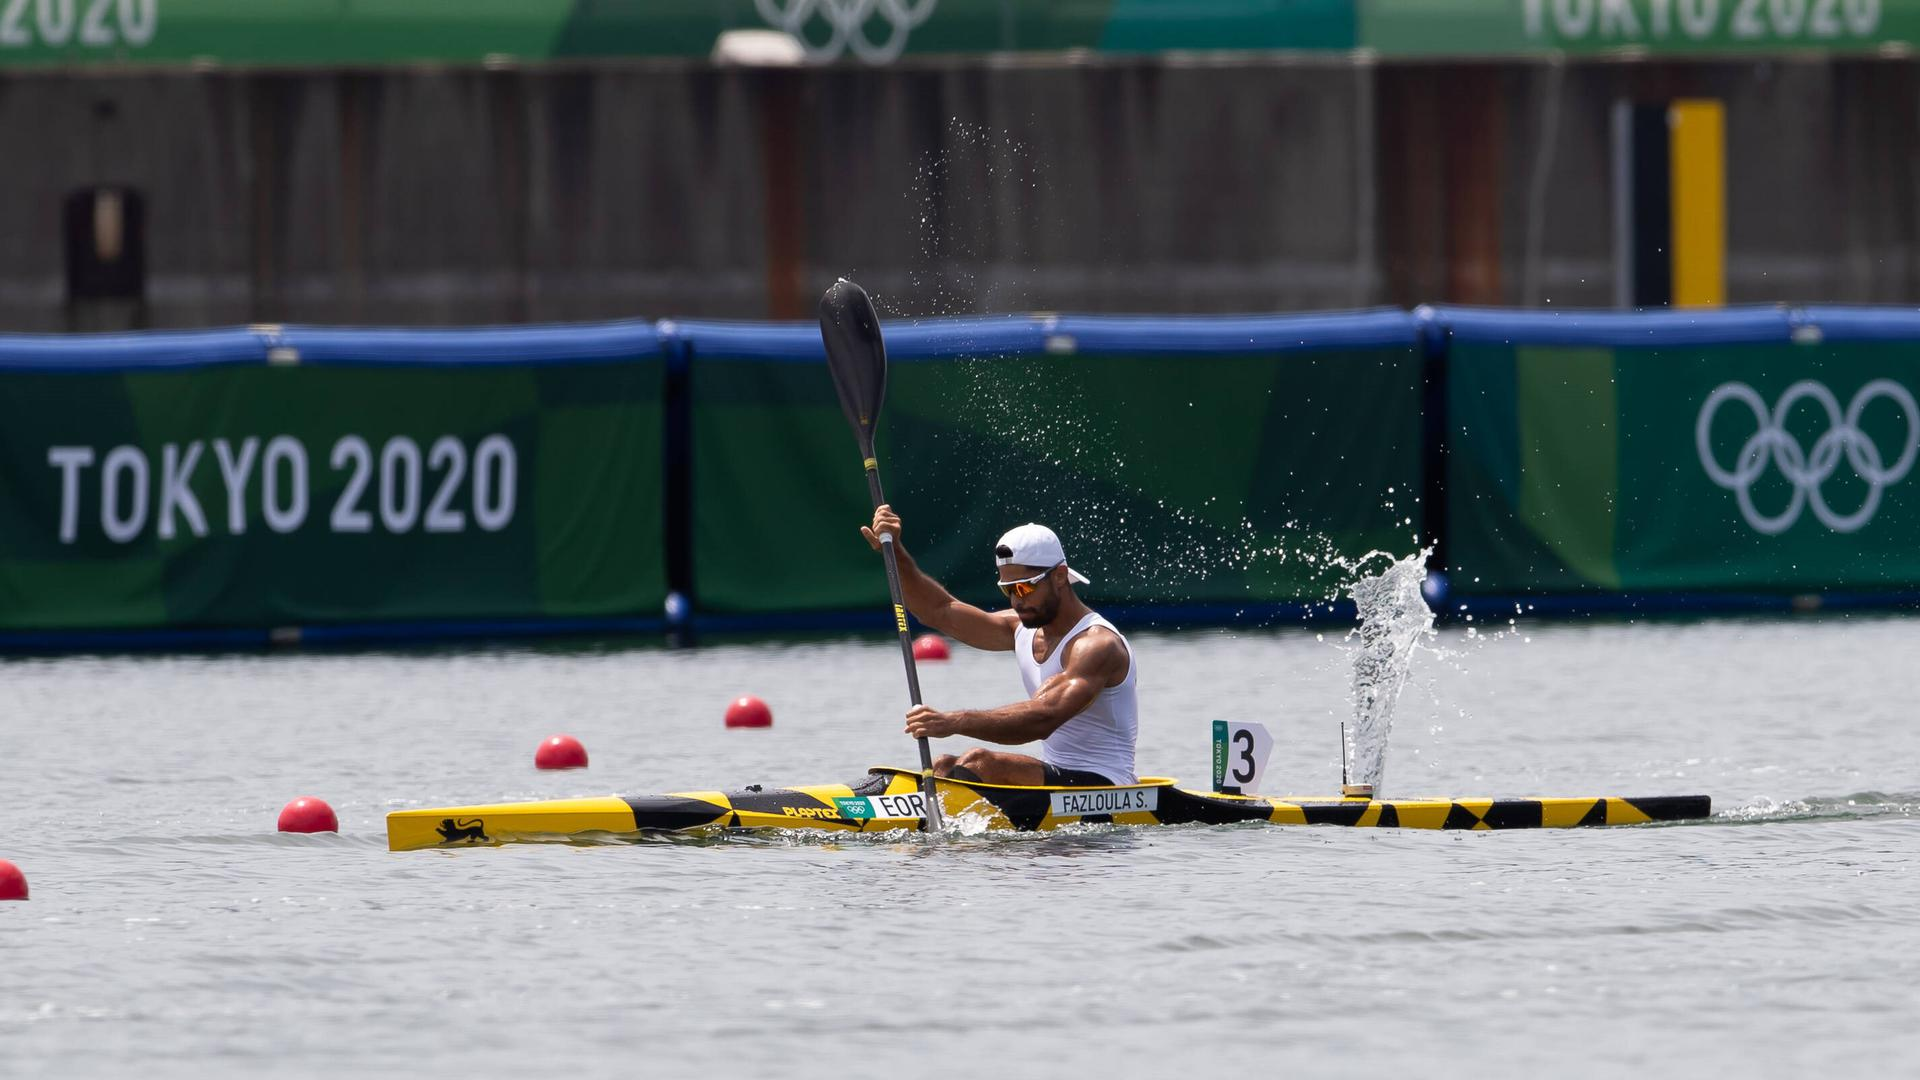 August 02, 2021: Saeid Fazloula 147 of Refugee Olympic Team in Men s Kayak 1000m race during the Canoe Sprint Heats at Sea Forest Waterway in Tokyo, Japan. /CSM Tokyo Japan - ZUMAc04_ 20210802_zaf_c04_014 Copyright: xDanielxLeax